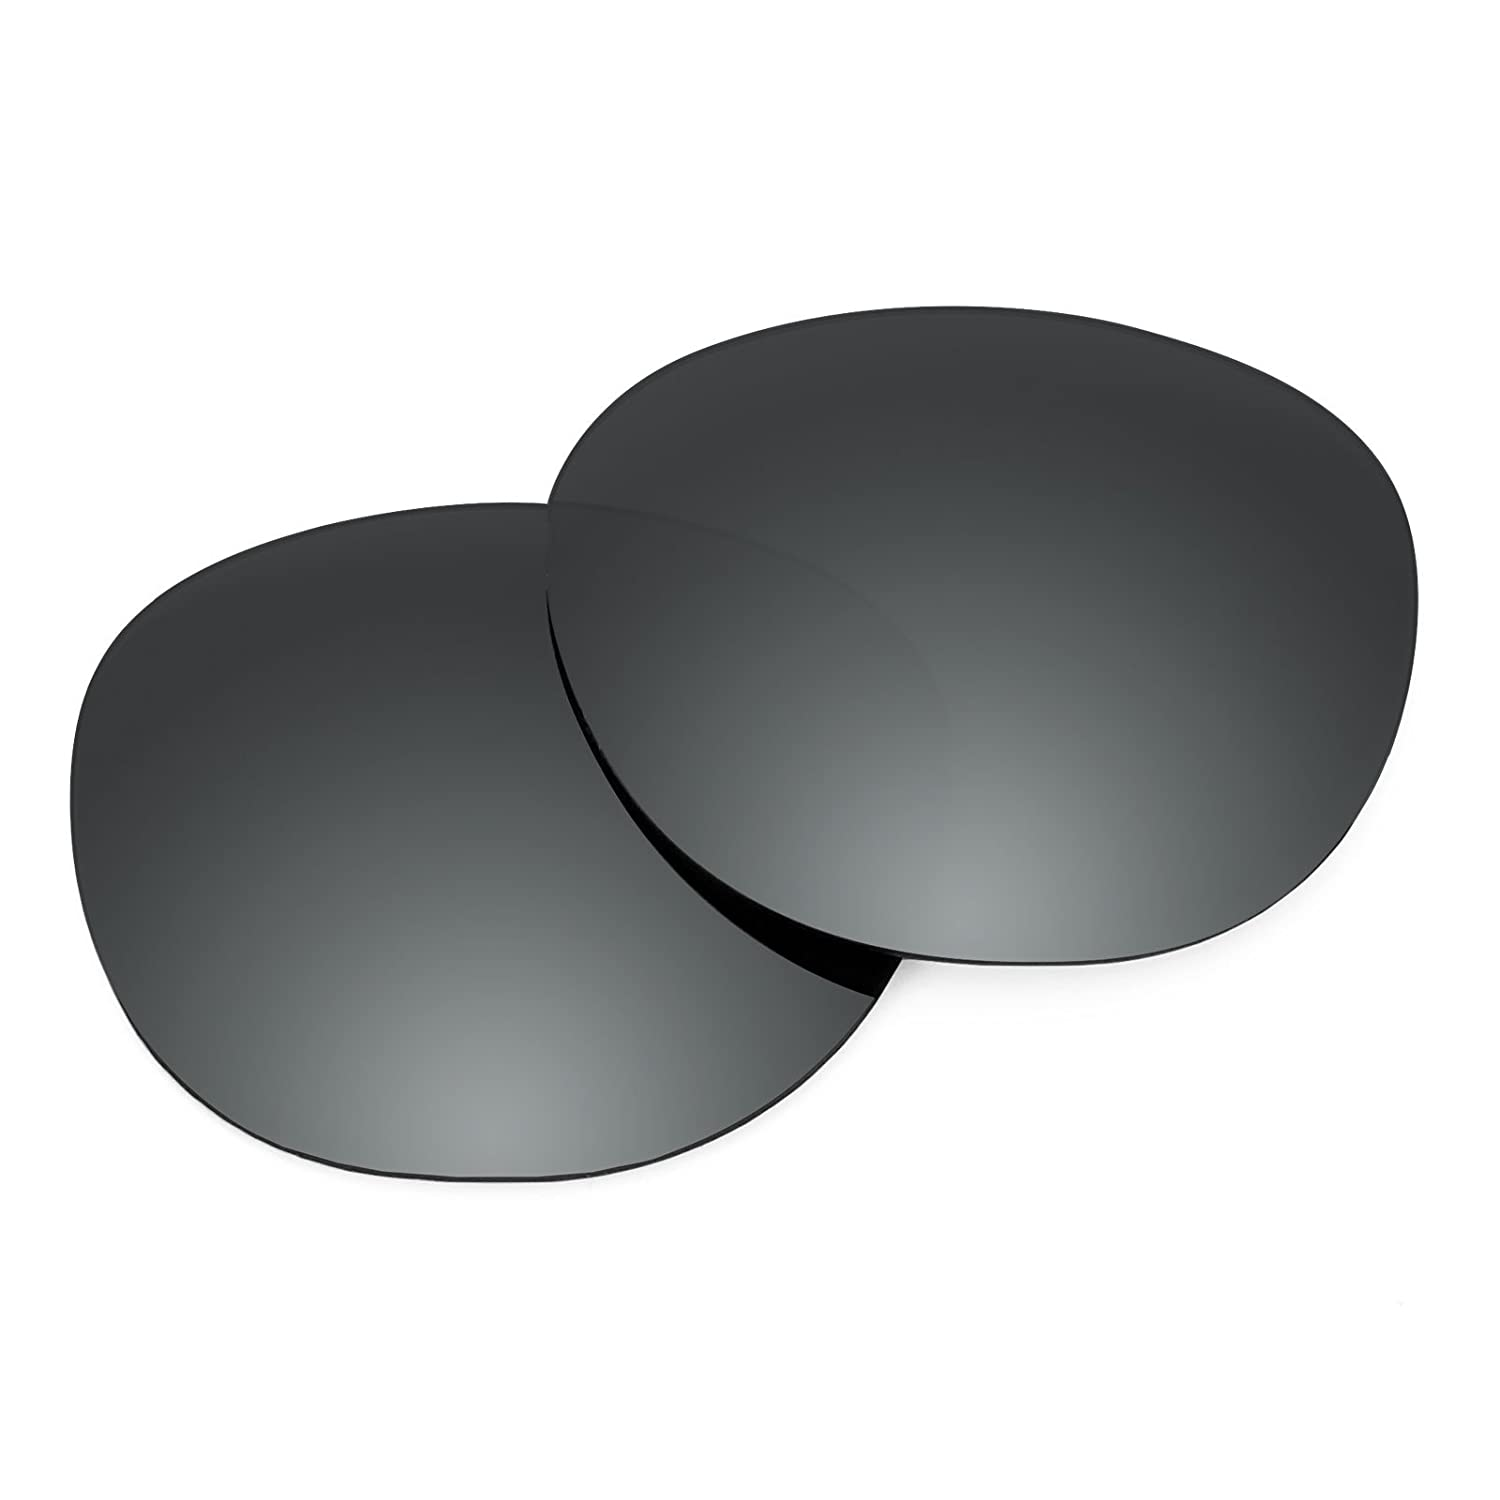 6c35a5efd4 Amazon.com  Revant Polarized Replacement Lenses for Oakley Latch Elite  Black Chrome MirrorShield  Sports   Outdoors